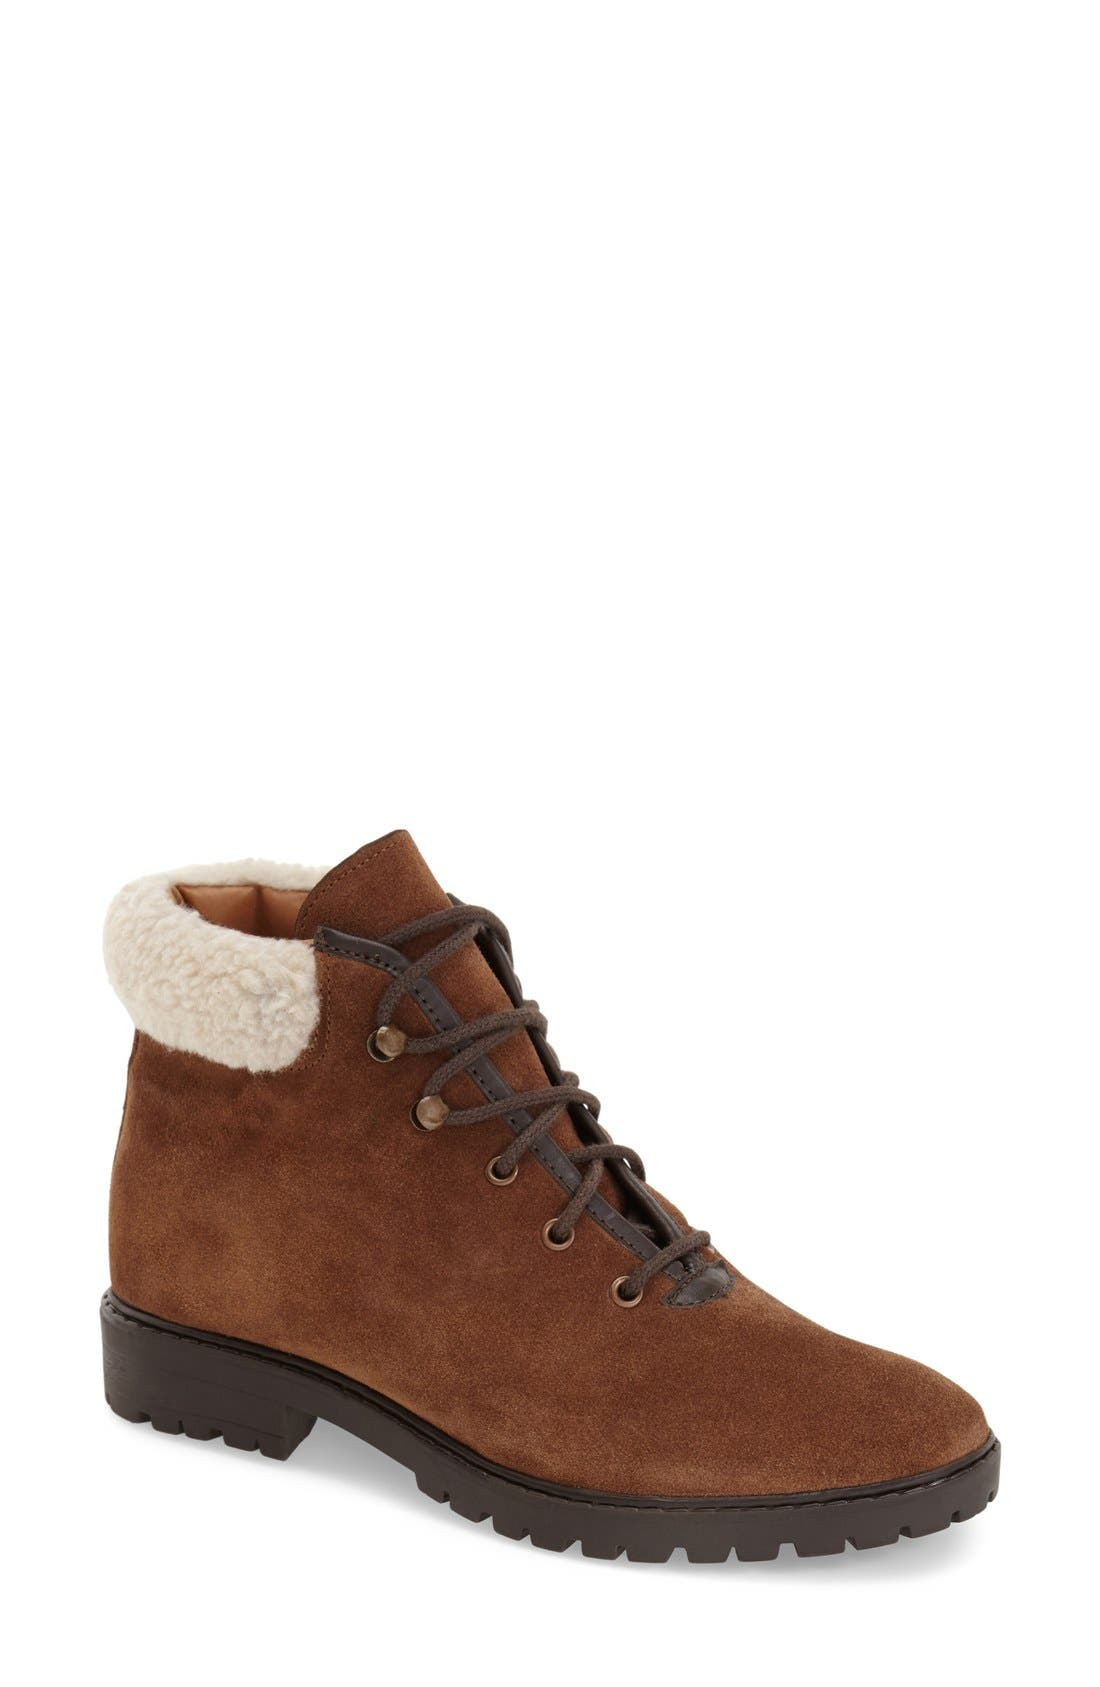 Main Image - Topshop Lace-Up Ankle Boots with Faux Fur Trim (Women)